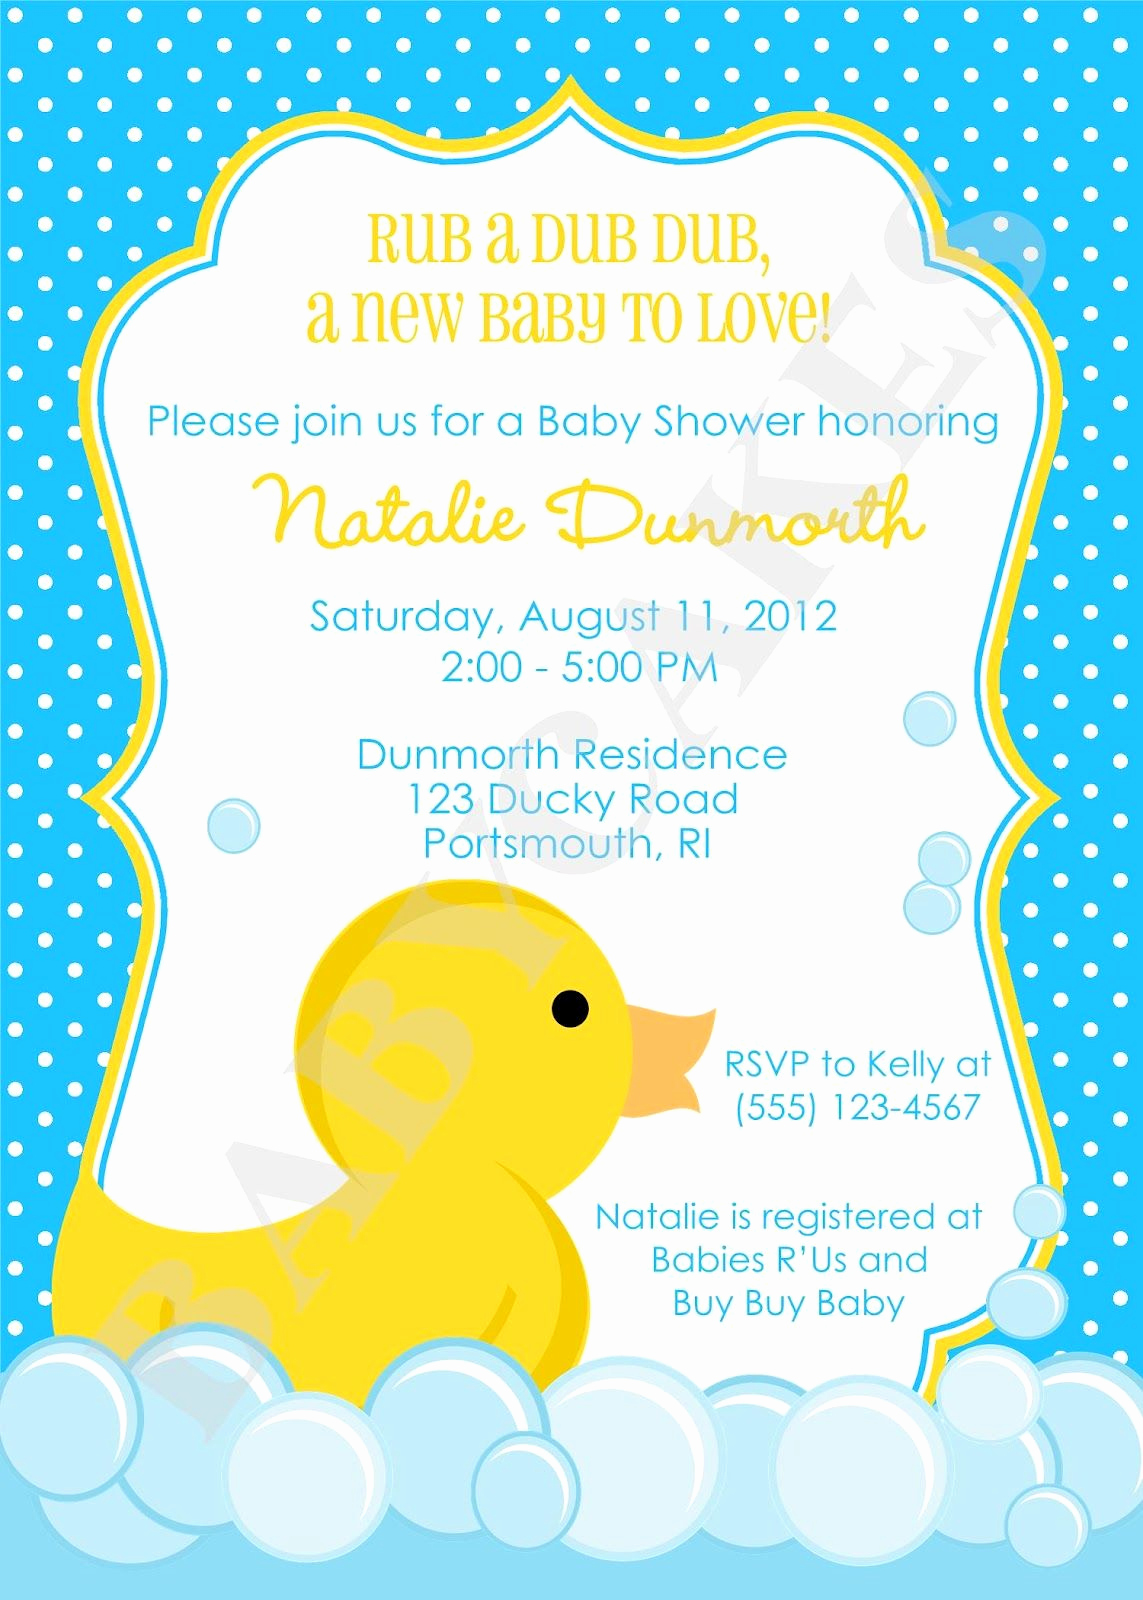 Rubber Ducky Baby Shower Invitation Unique Cute Duck Invitation Party